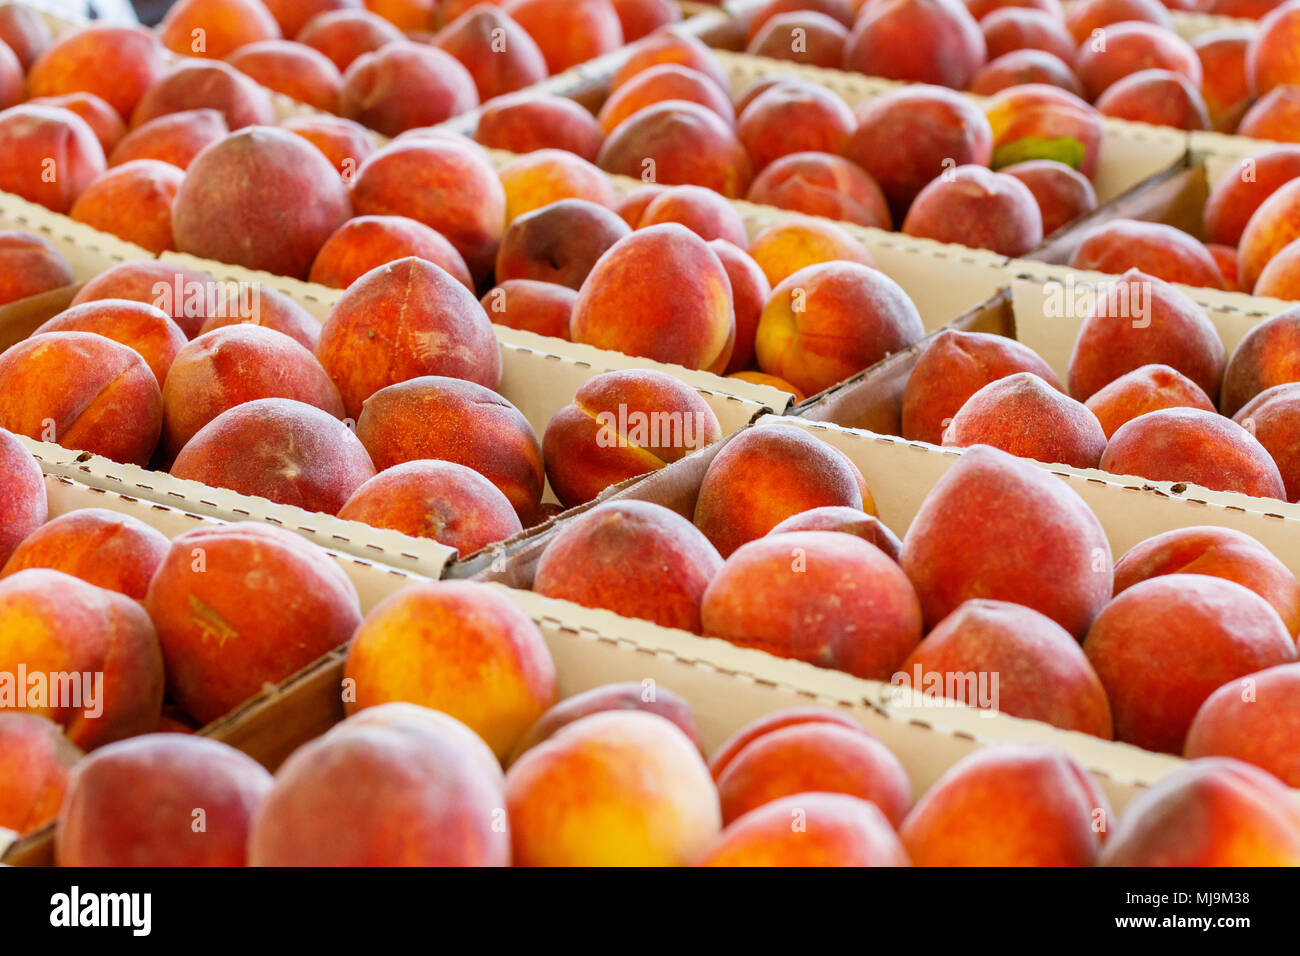 Fresh Peaches at a Farmers Market. - Stock Image